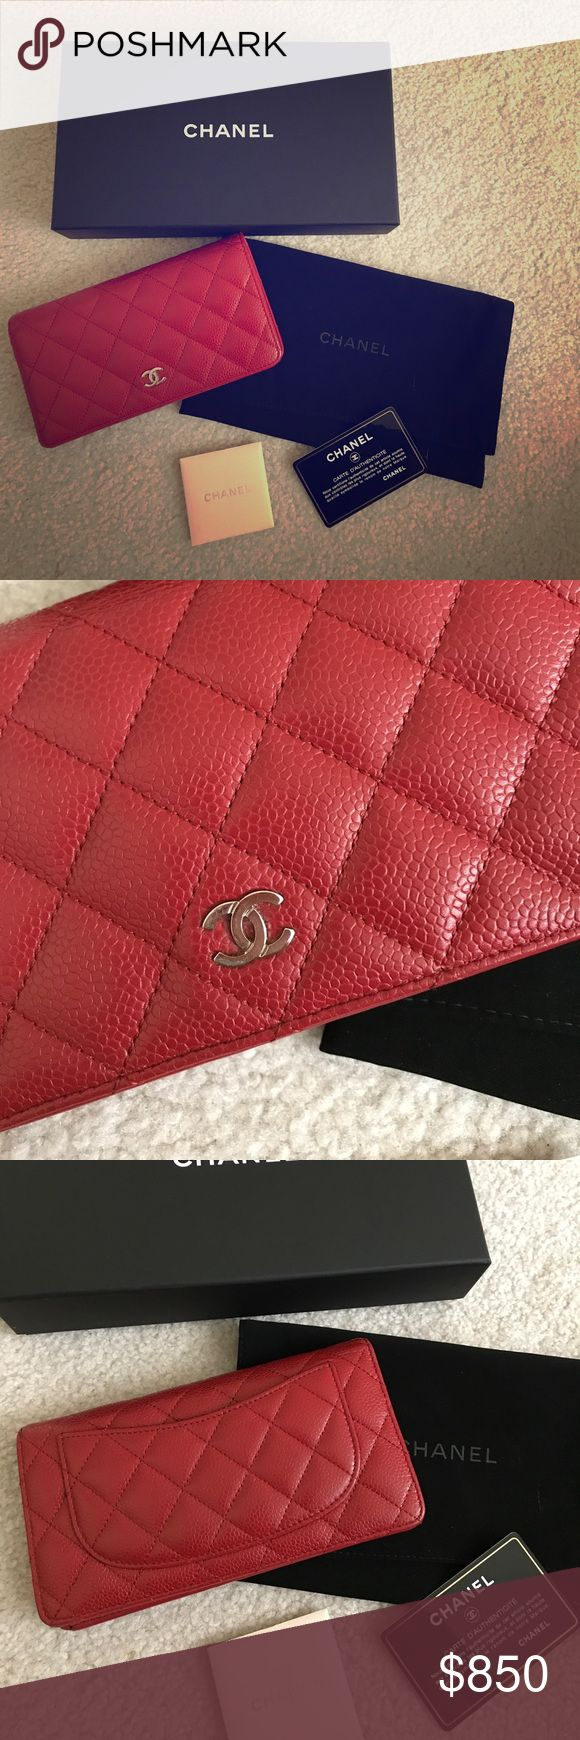 Chanel classic quilted cavair L-Yen Wallet 100% authentic!!! Comes with box, booklet and authenticity card. Good condition. Bought at the Nordstrom in Seattle. Retails $925+ tax = $1013. No trade and poshmark takes too much out of fees so price is firm on this app CHANEL Bags Wallets